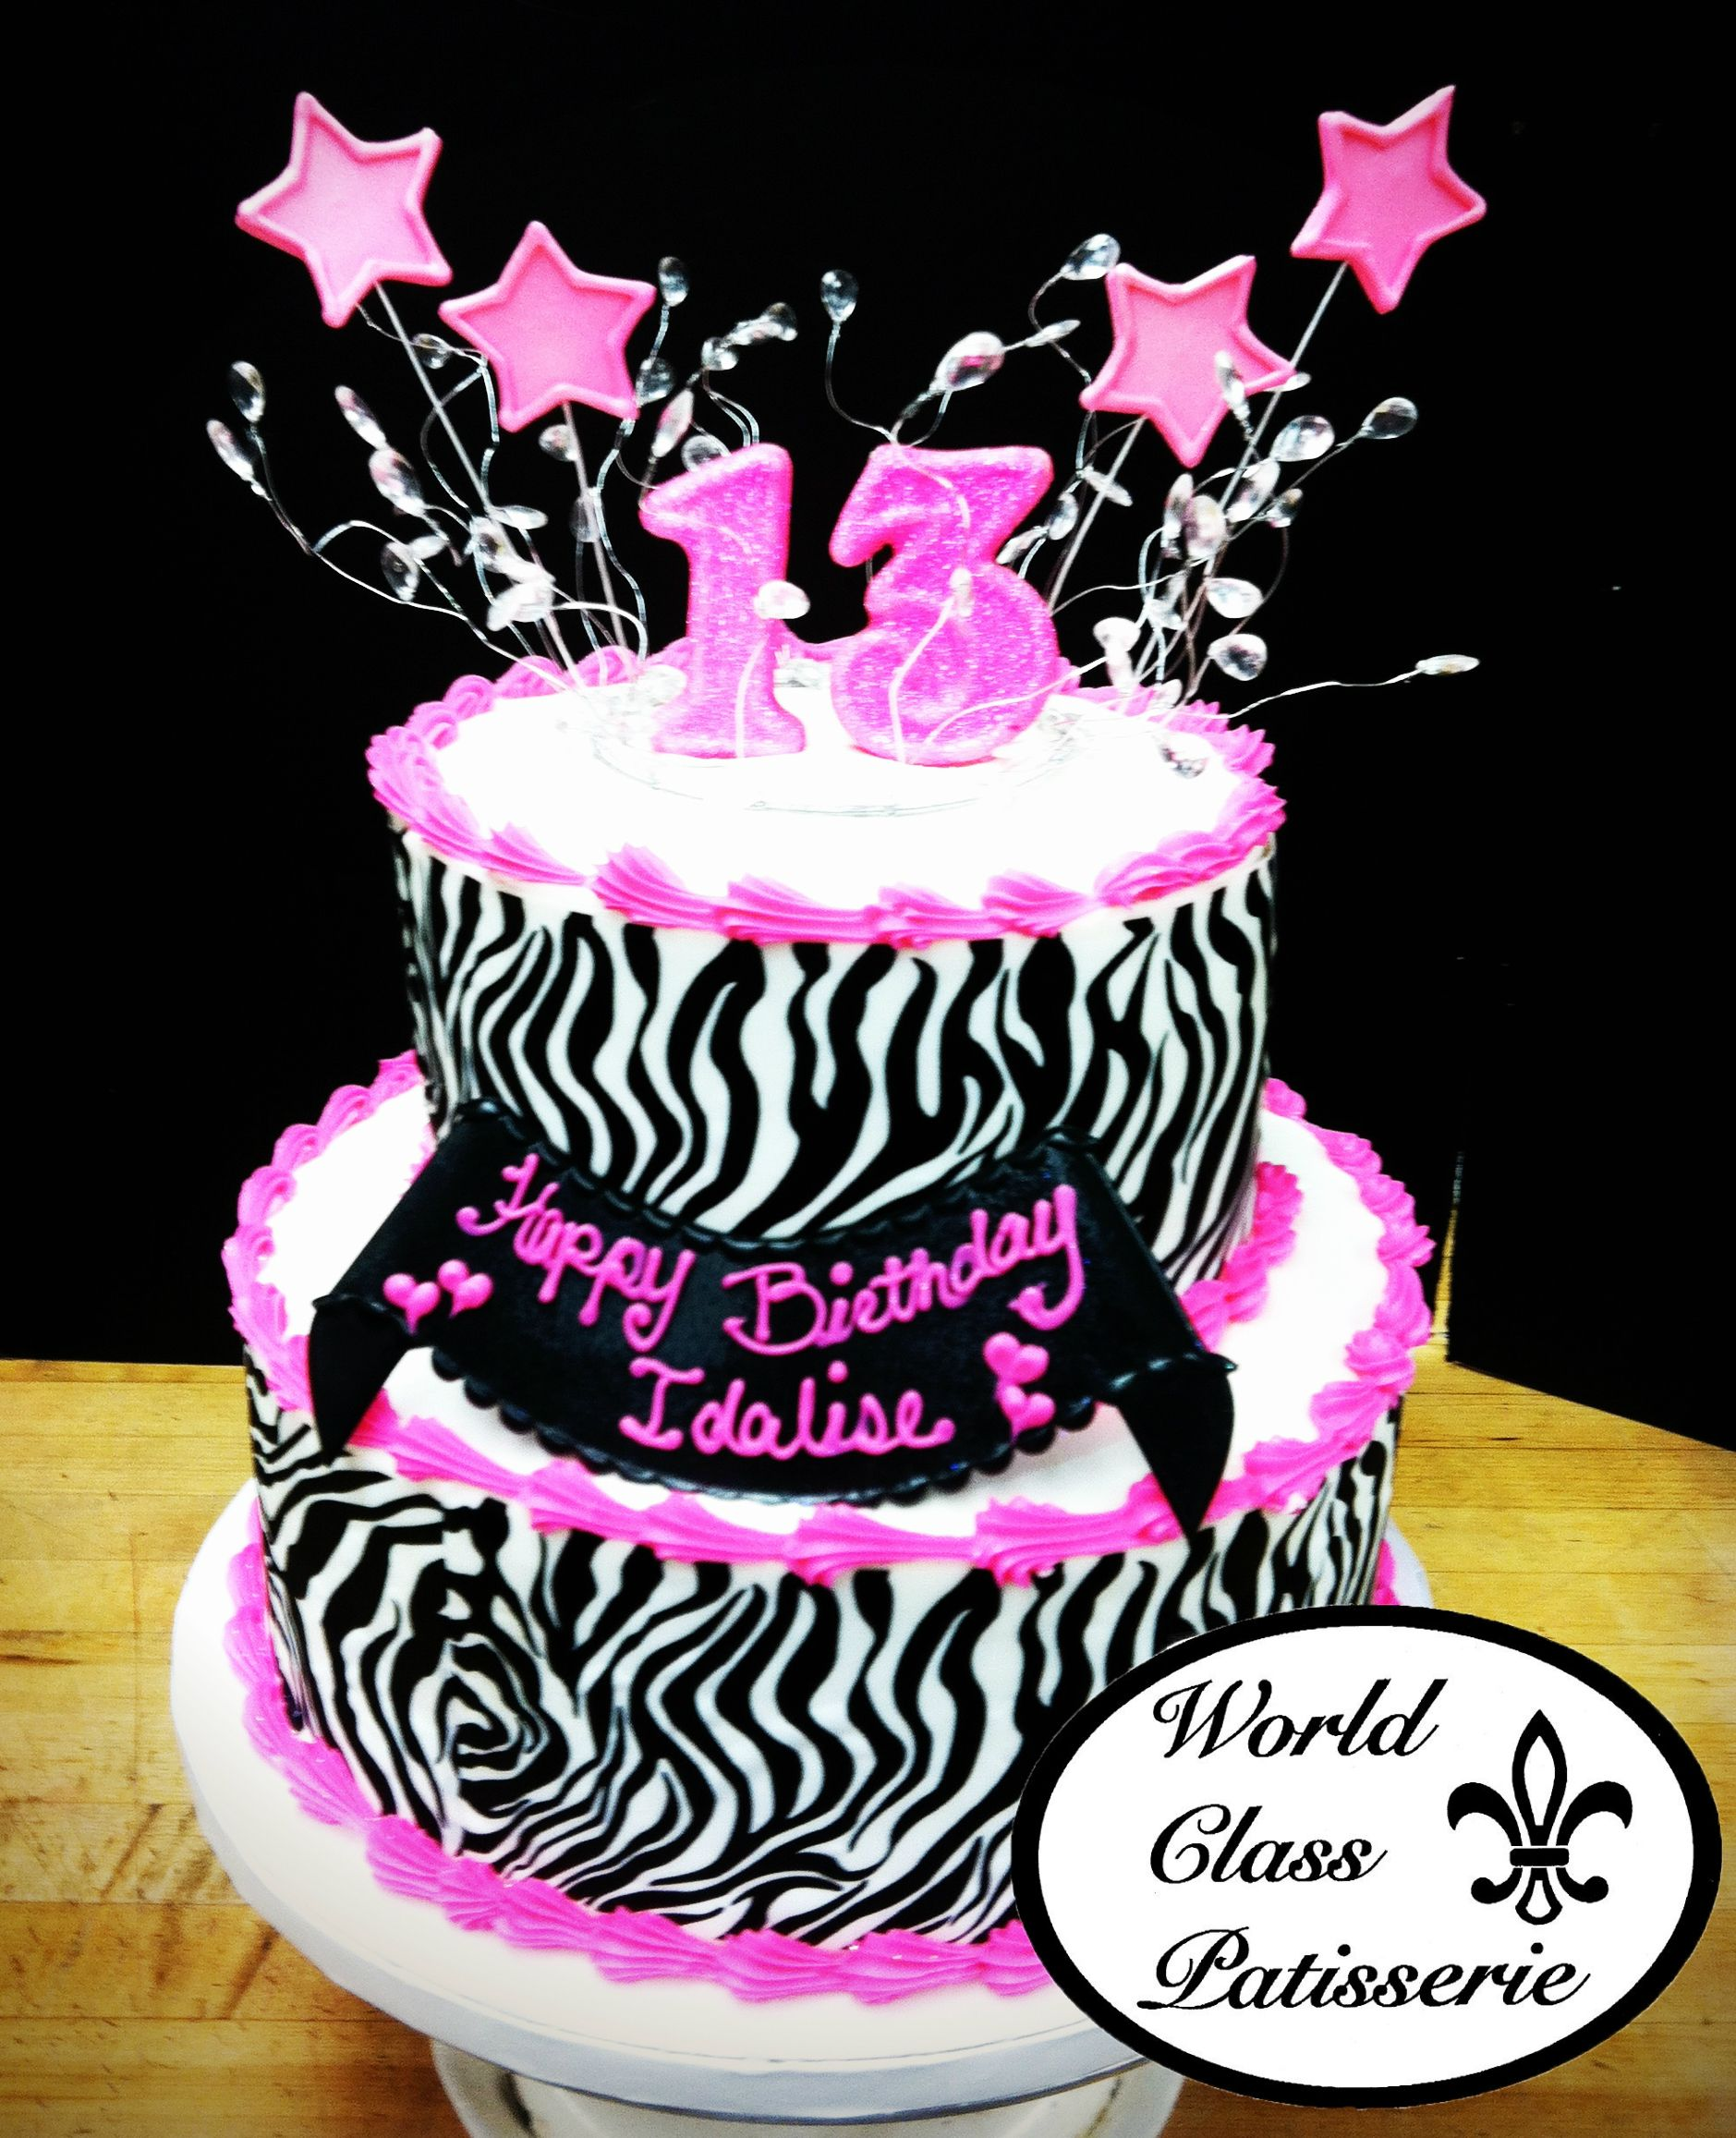 Astounding Finally A Teenager This World Class Patisserie Cake Is Available Funny Birthday Cards Online Elaedamsfinfo